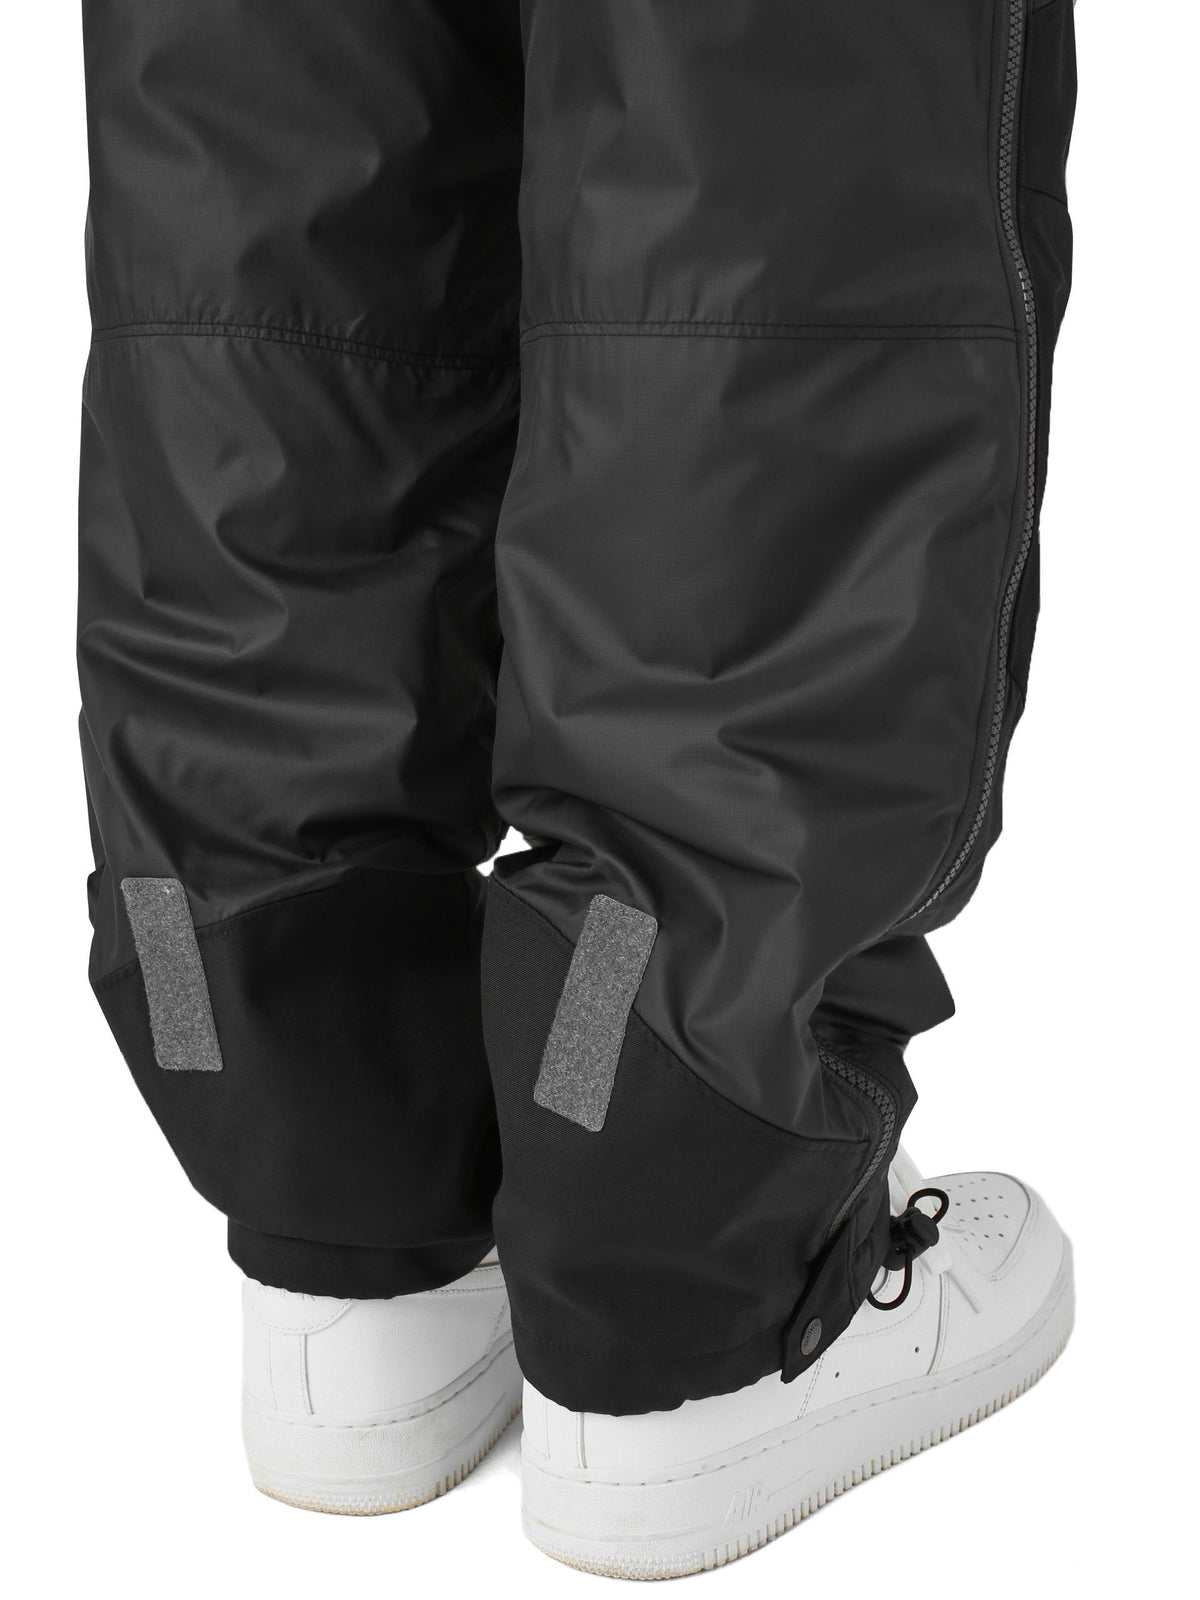 Insulated PCU Pant Pants